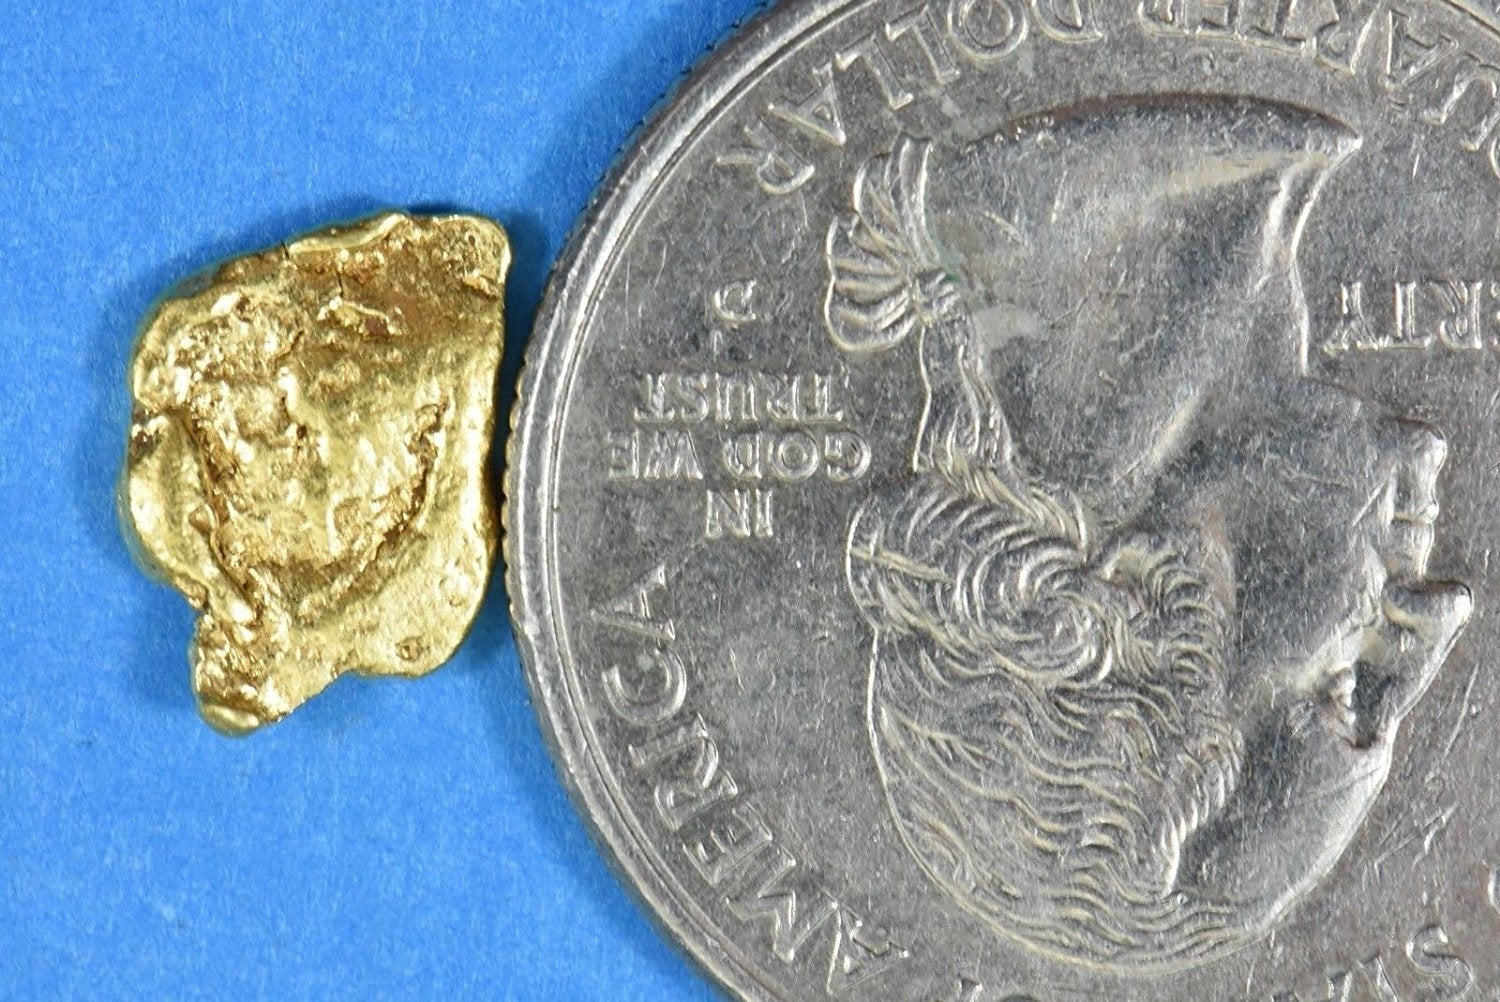 Alaskan Bc Natural Gold Nugget 100 Gram Lot Of .70 To 5 Gram Nuggets Genuine Alaska Lots/groups